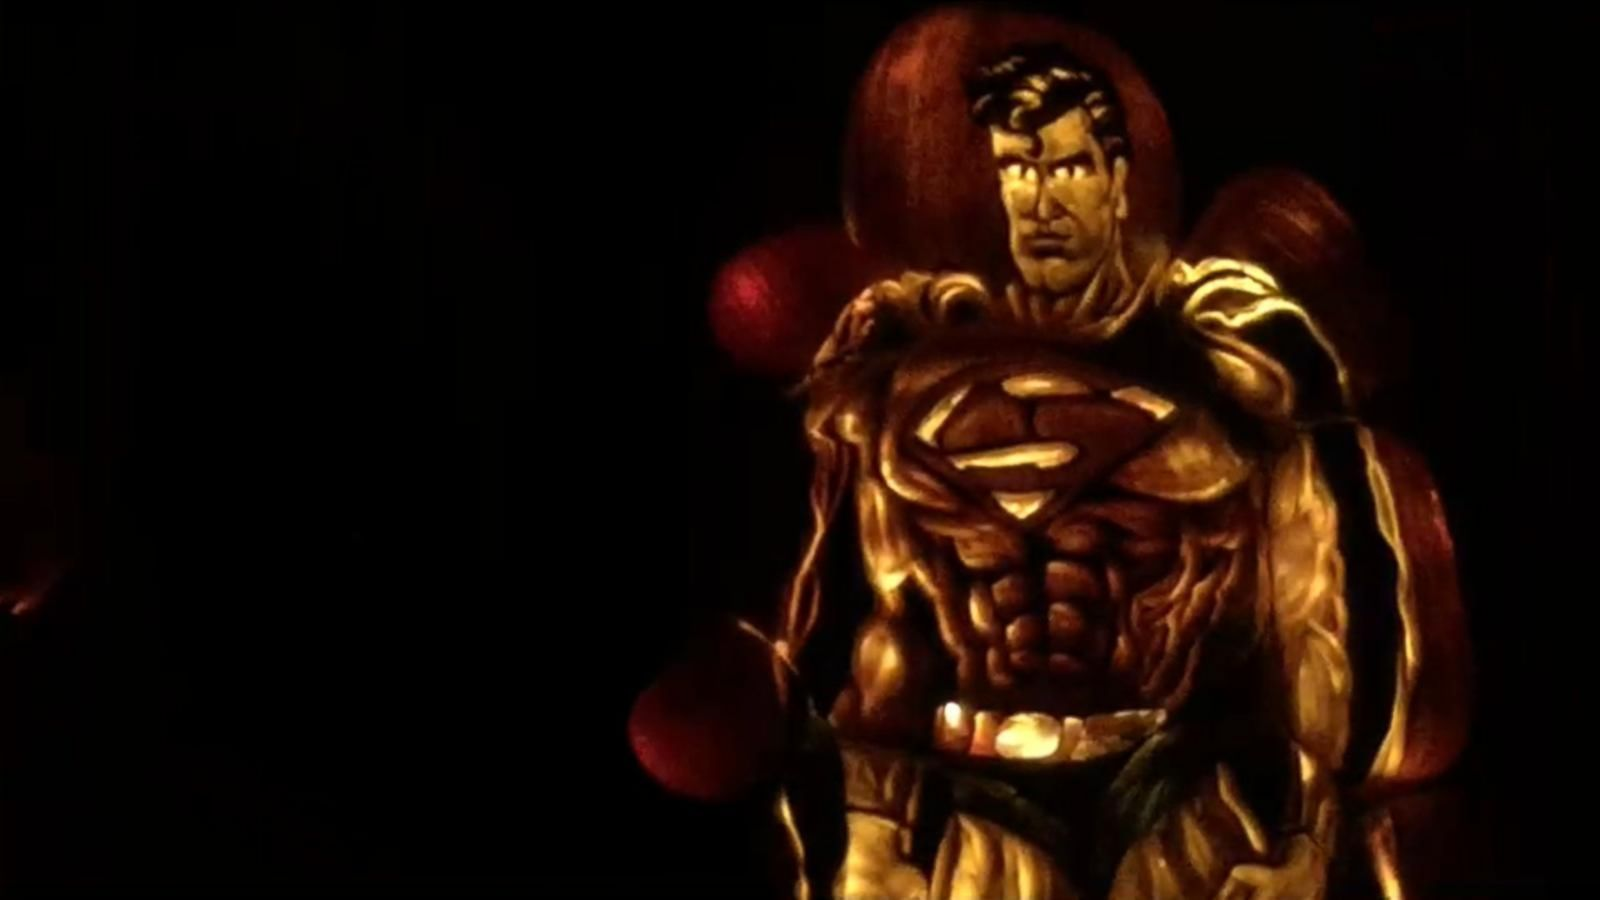 VIDEO: Behind the Scenes of Spectacular Jack O'Lanterns Display